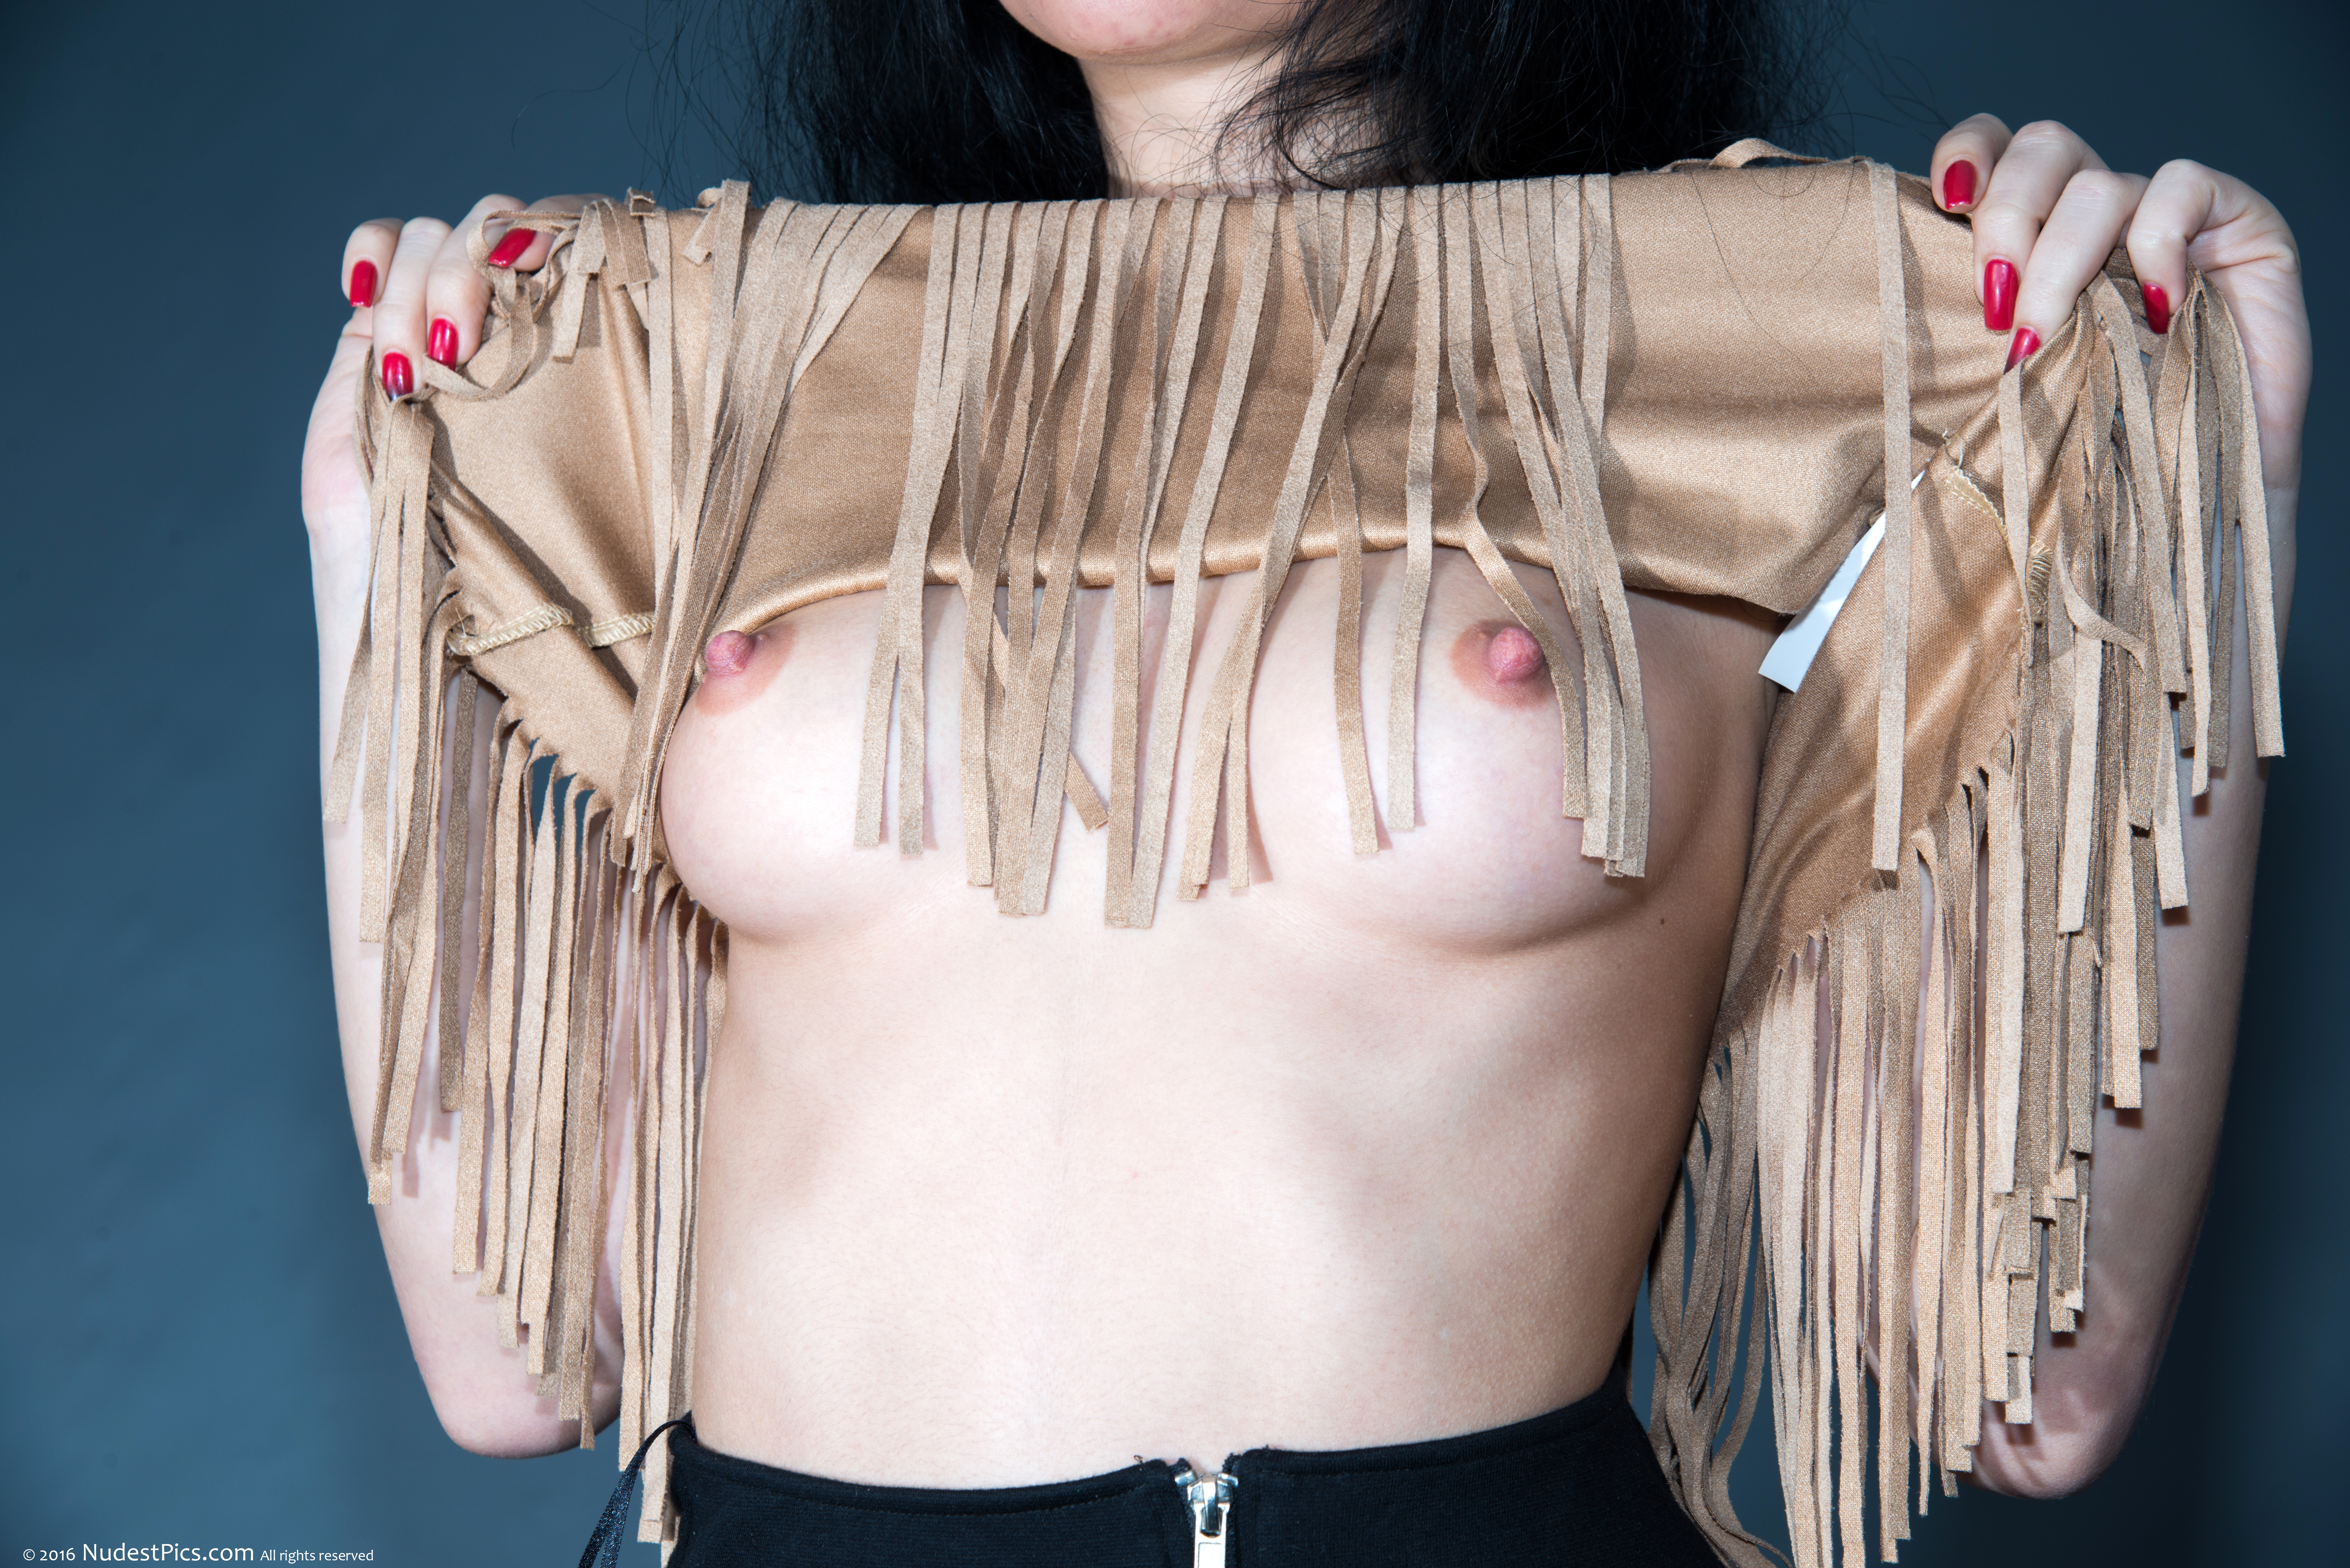 Flashing Pretty Round Small Breasts American Indian Style HD